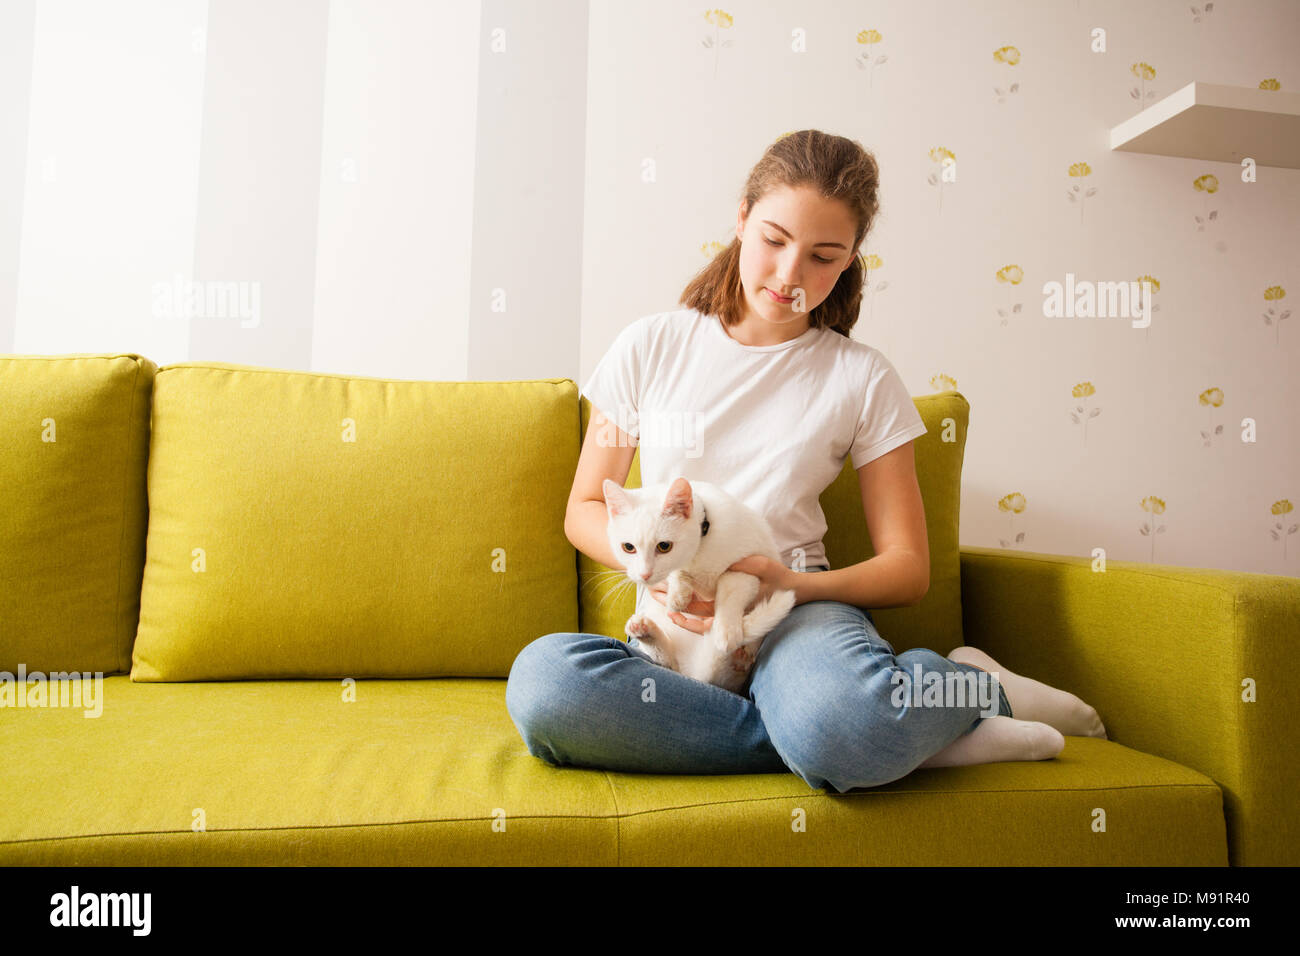 the cat is on the way down from the girl's hugs - Stock Image